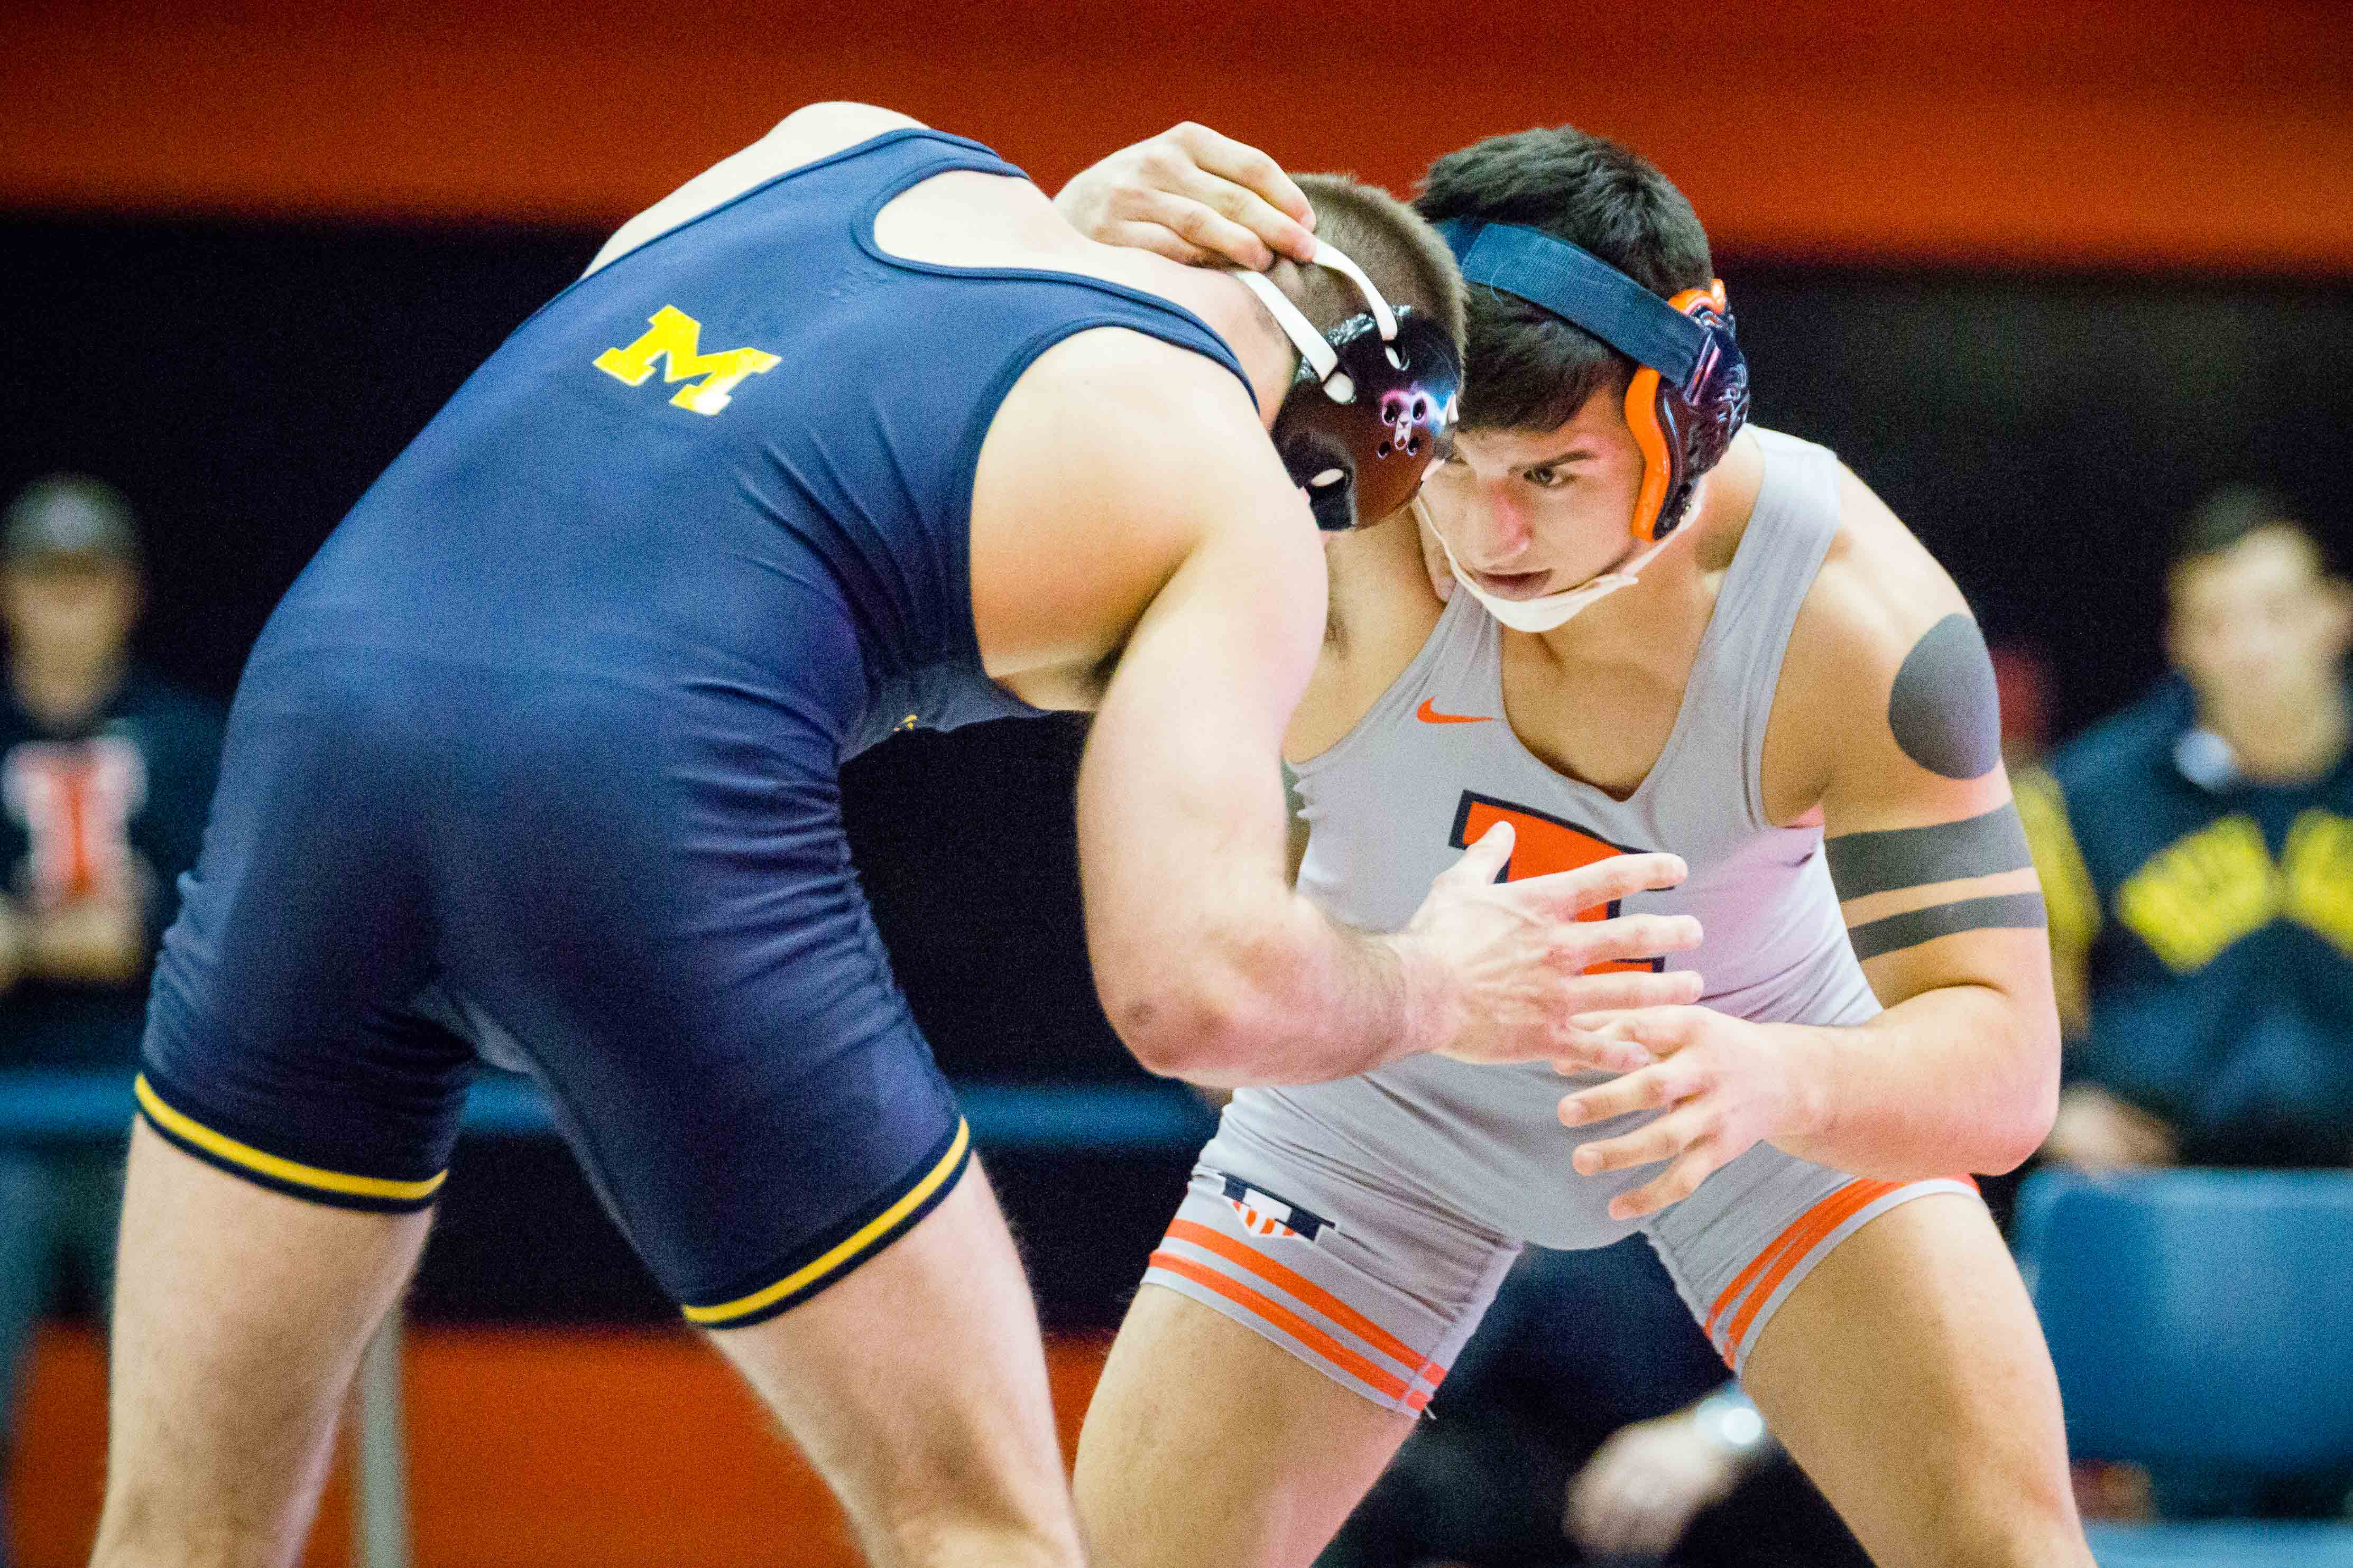 Illinois' Isaiah Martinez wrestles with Michigan's Logan Massa in the 165 pound weight class during the match at Huff Hall on Friday, January 20.